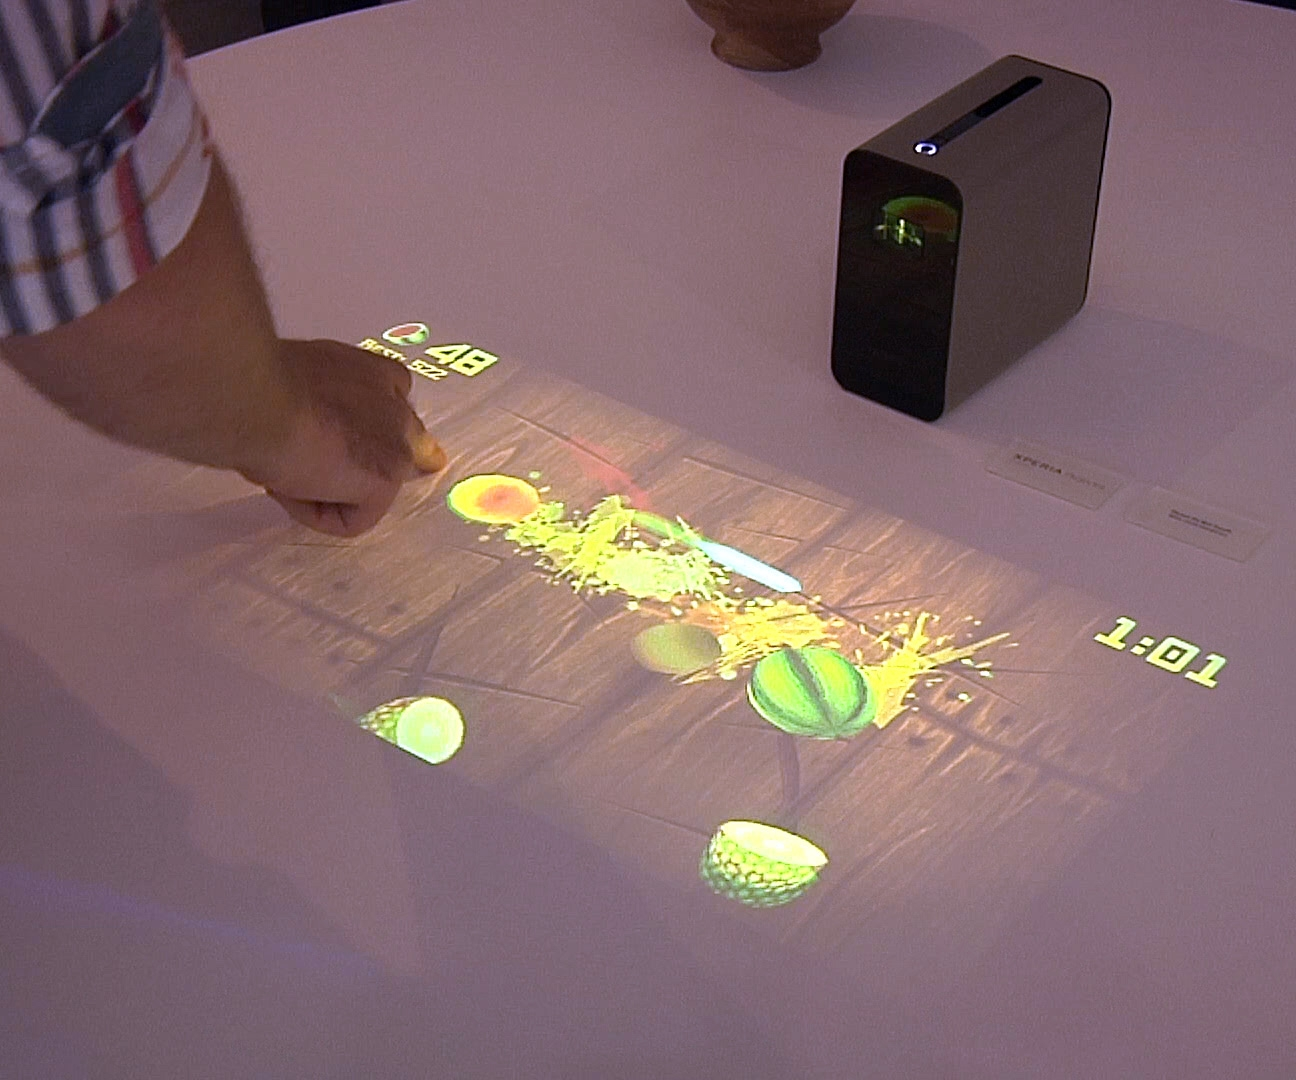 Odd prototypes from Sony: a touchscreen projector, earphones with gestural controls and more